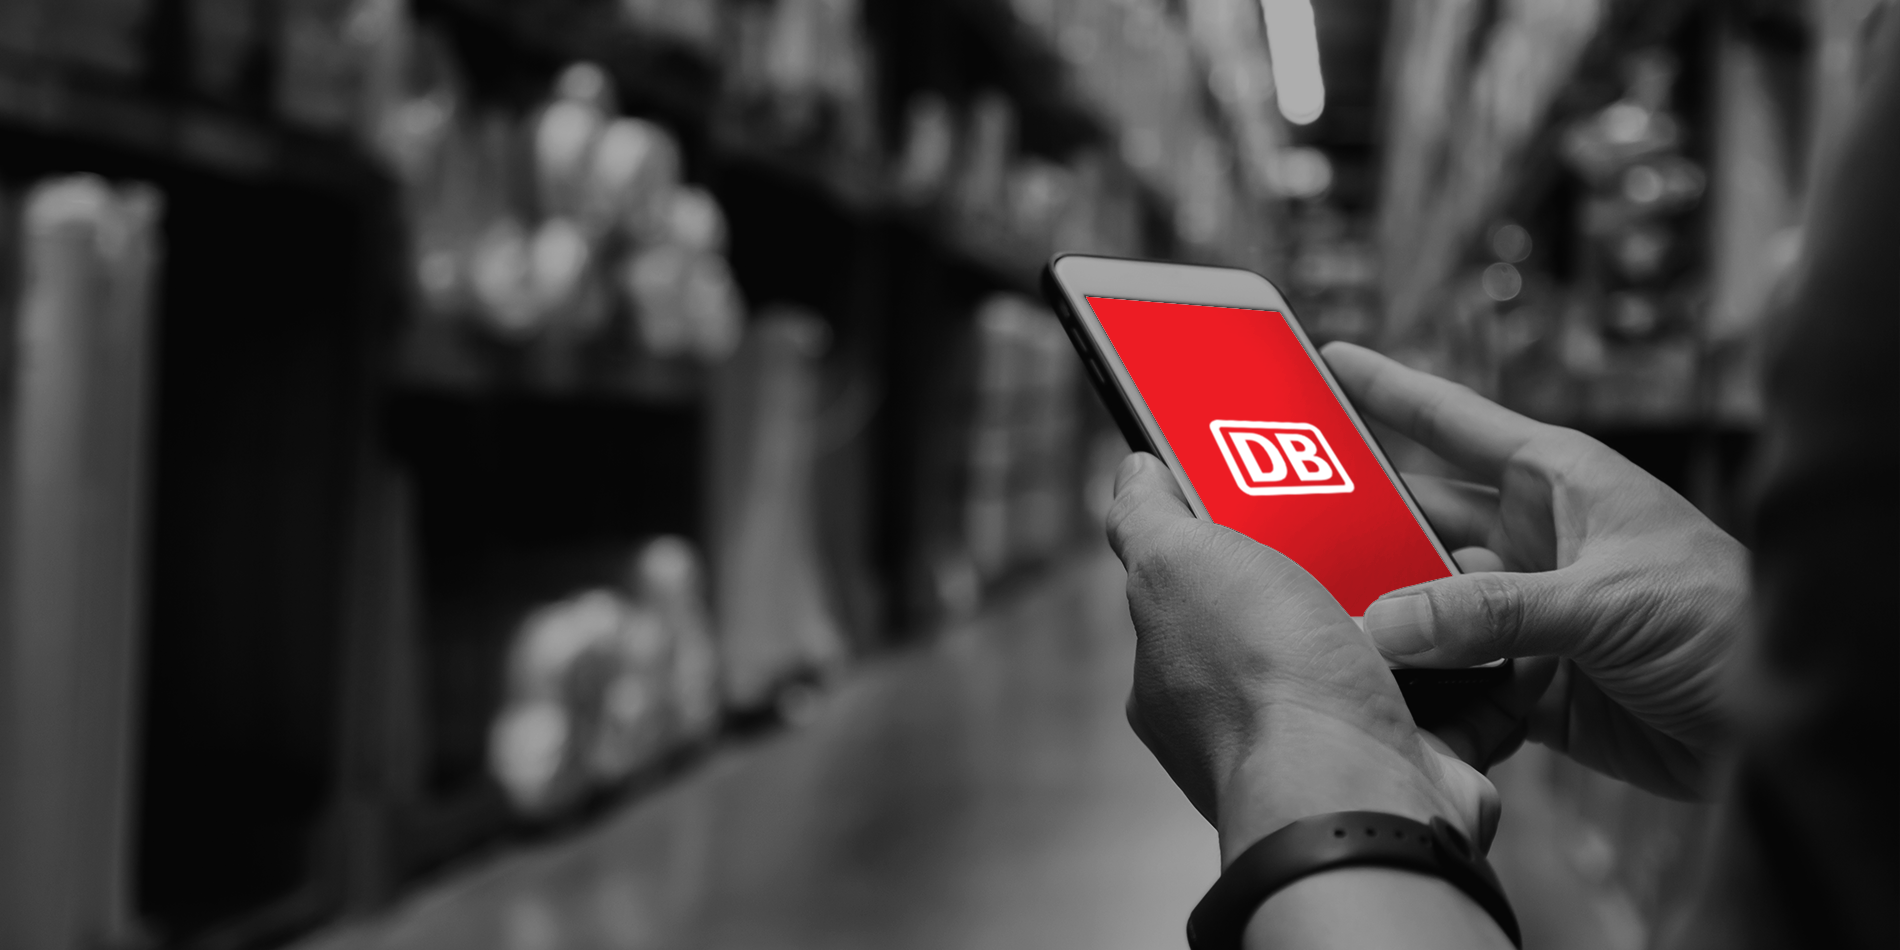 DB-Cargo-Page_Phone_Image-Recovered